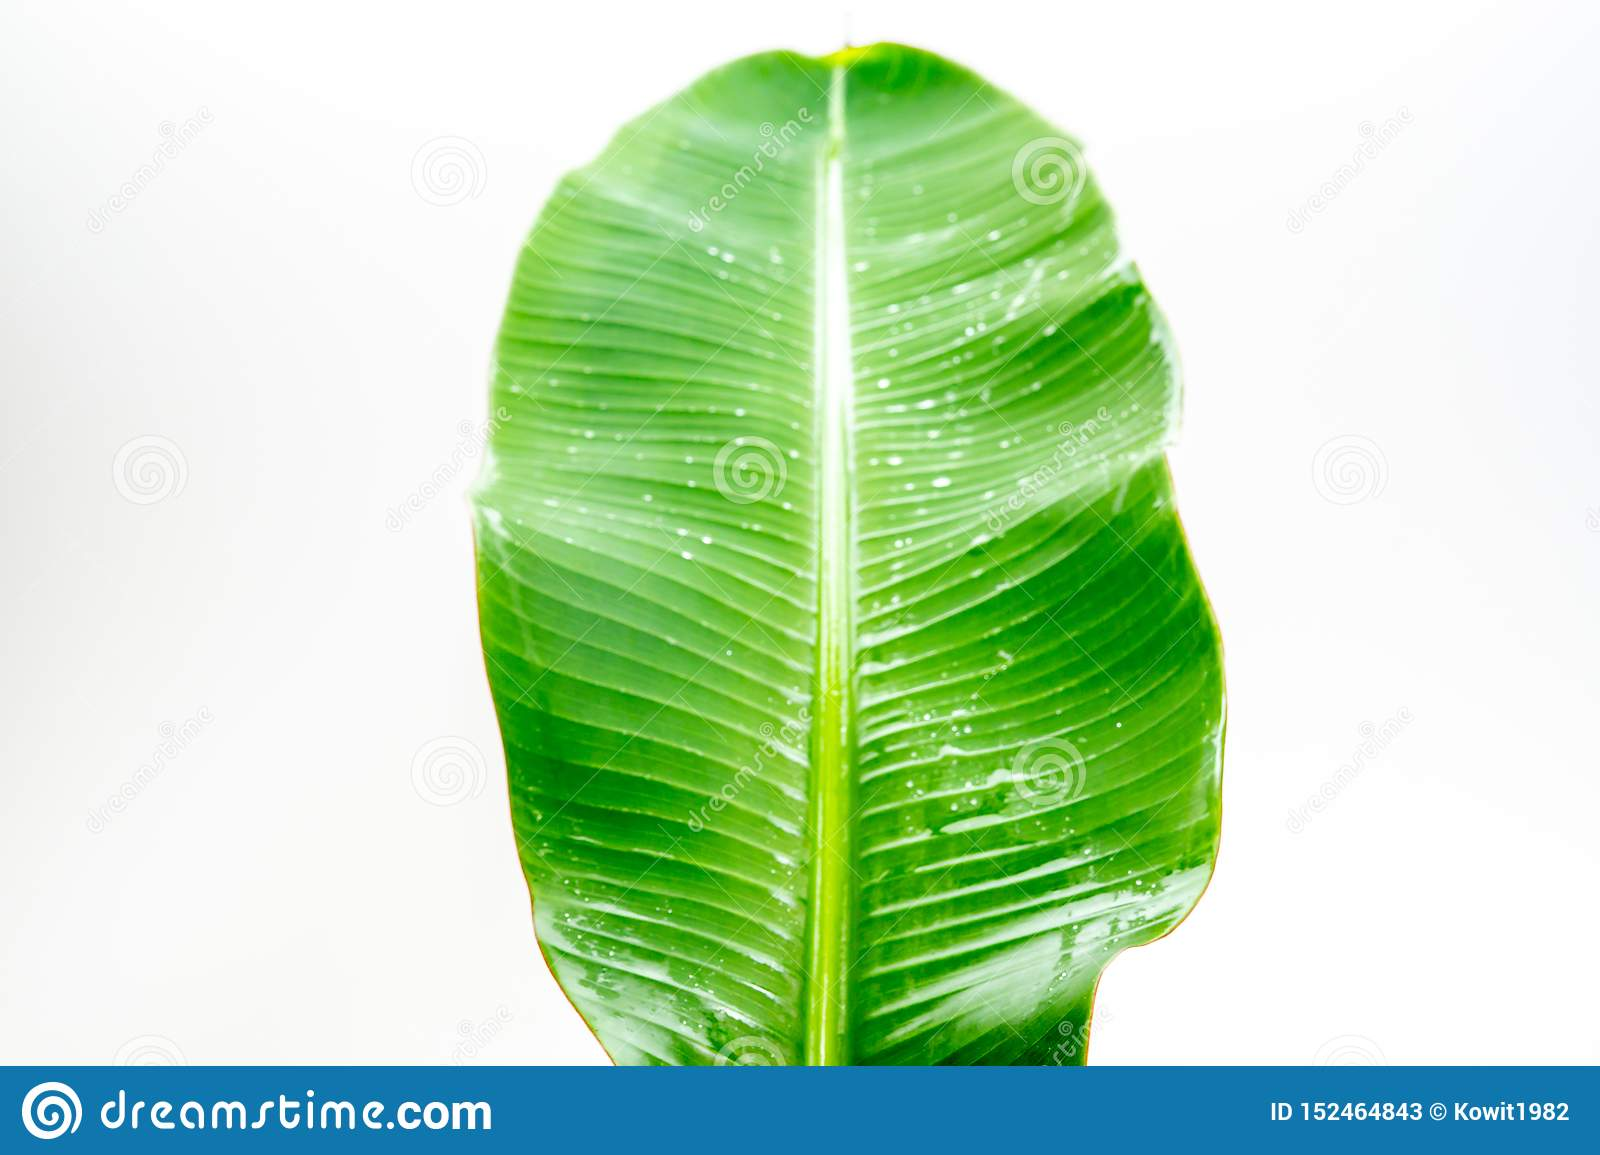 Tropical Banana Leaf In Bright Green Color Image Stock